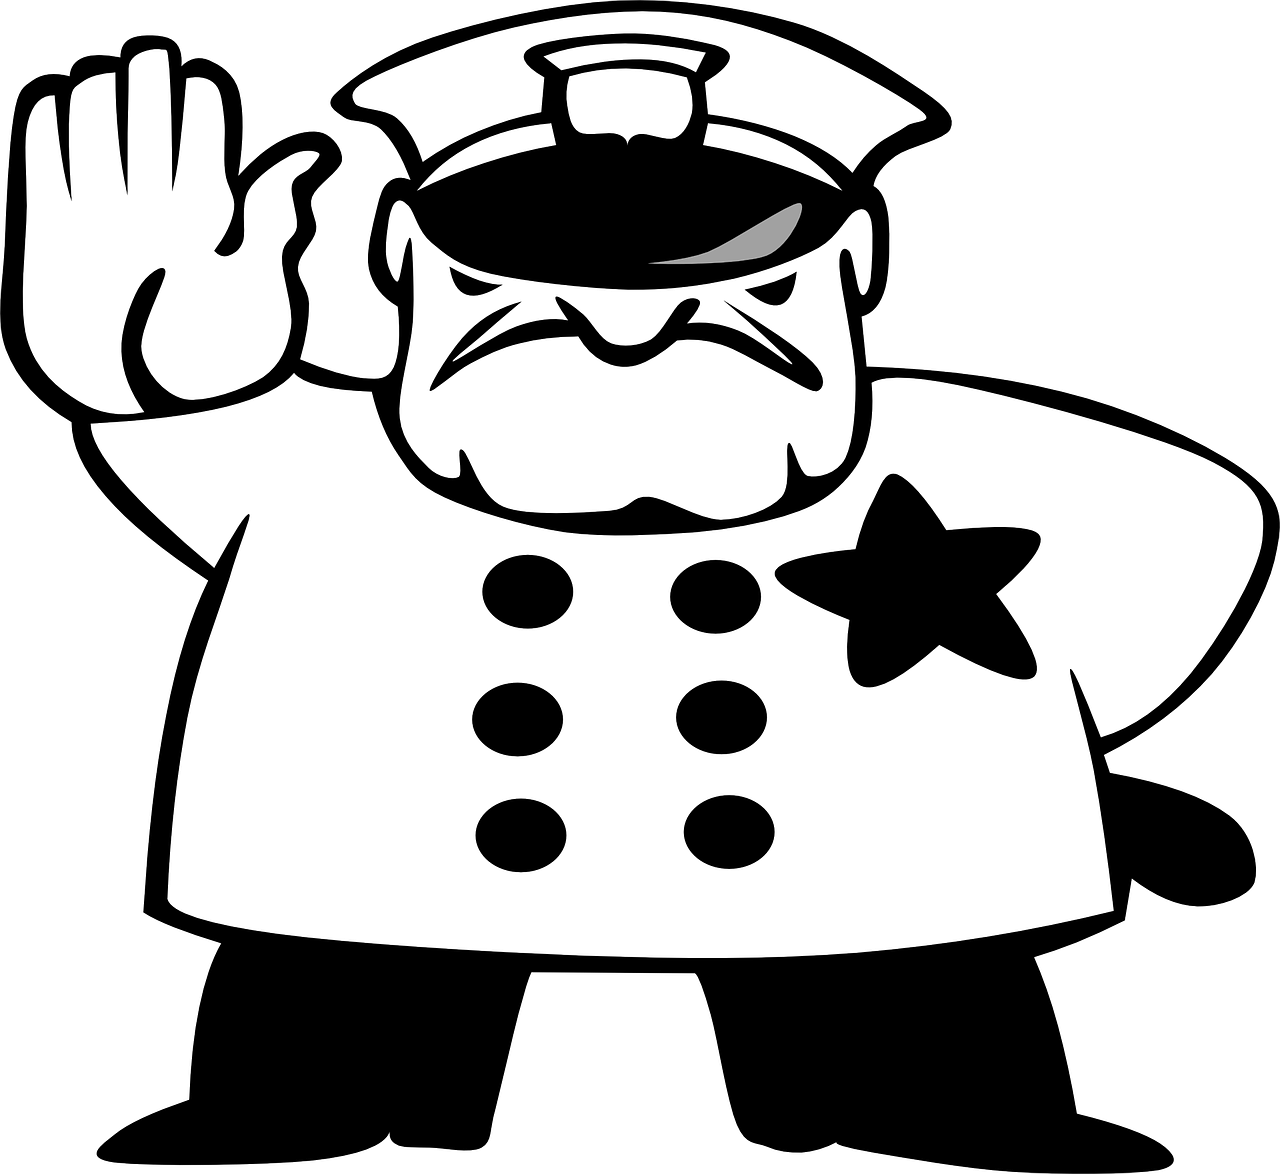 Law book clipart jpg freeuse download Police Hat Drawing at GetDrawings.com | Free for personal use Police ... jpg freeuse download